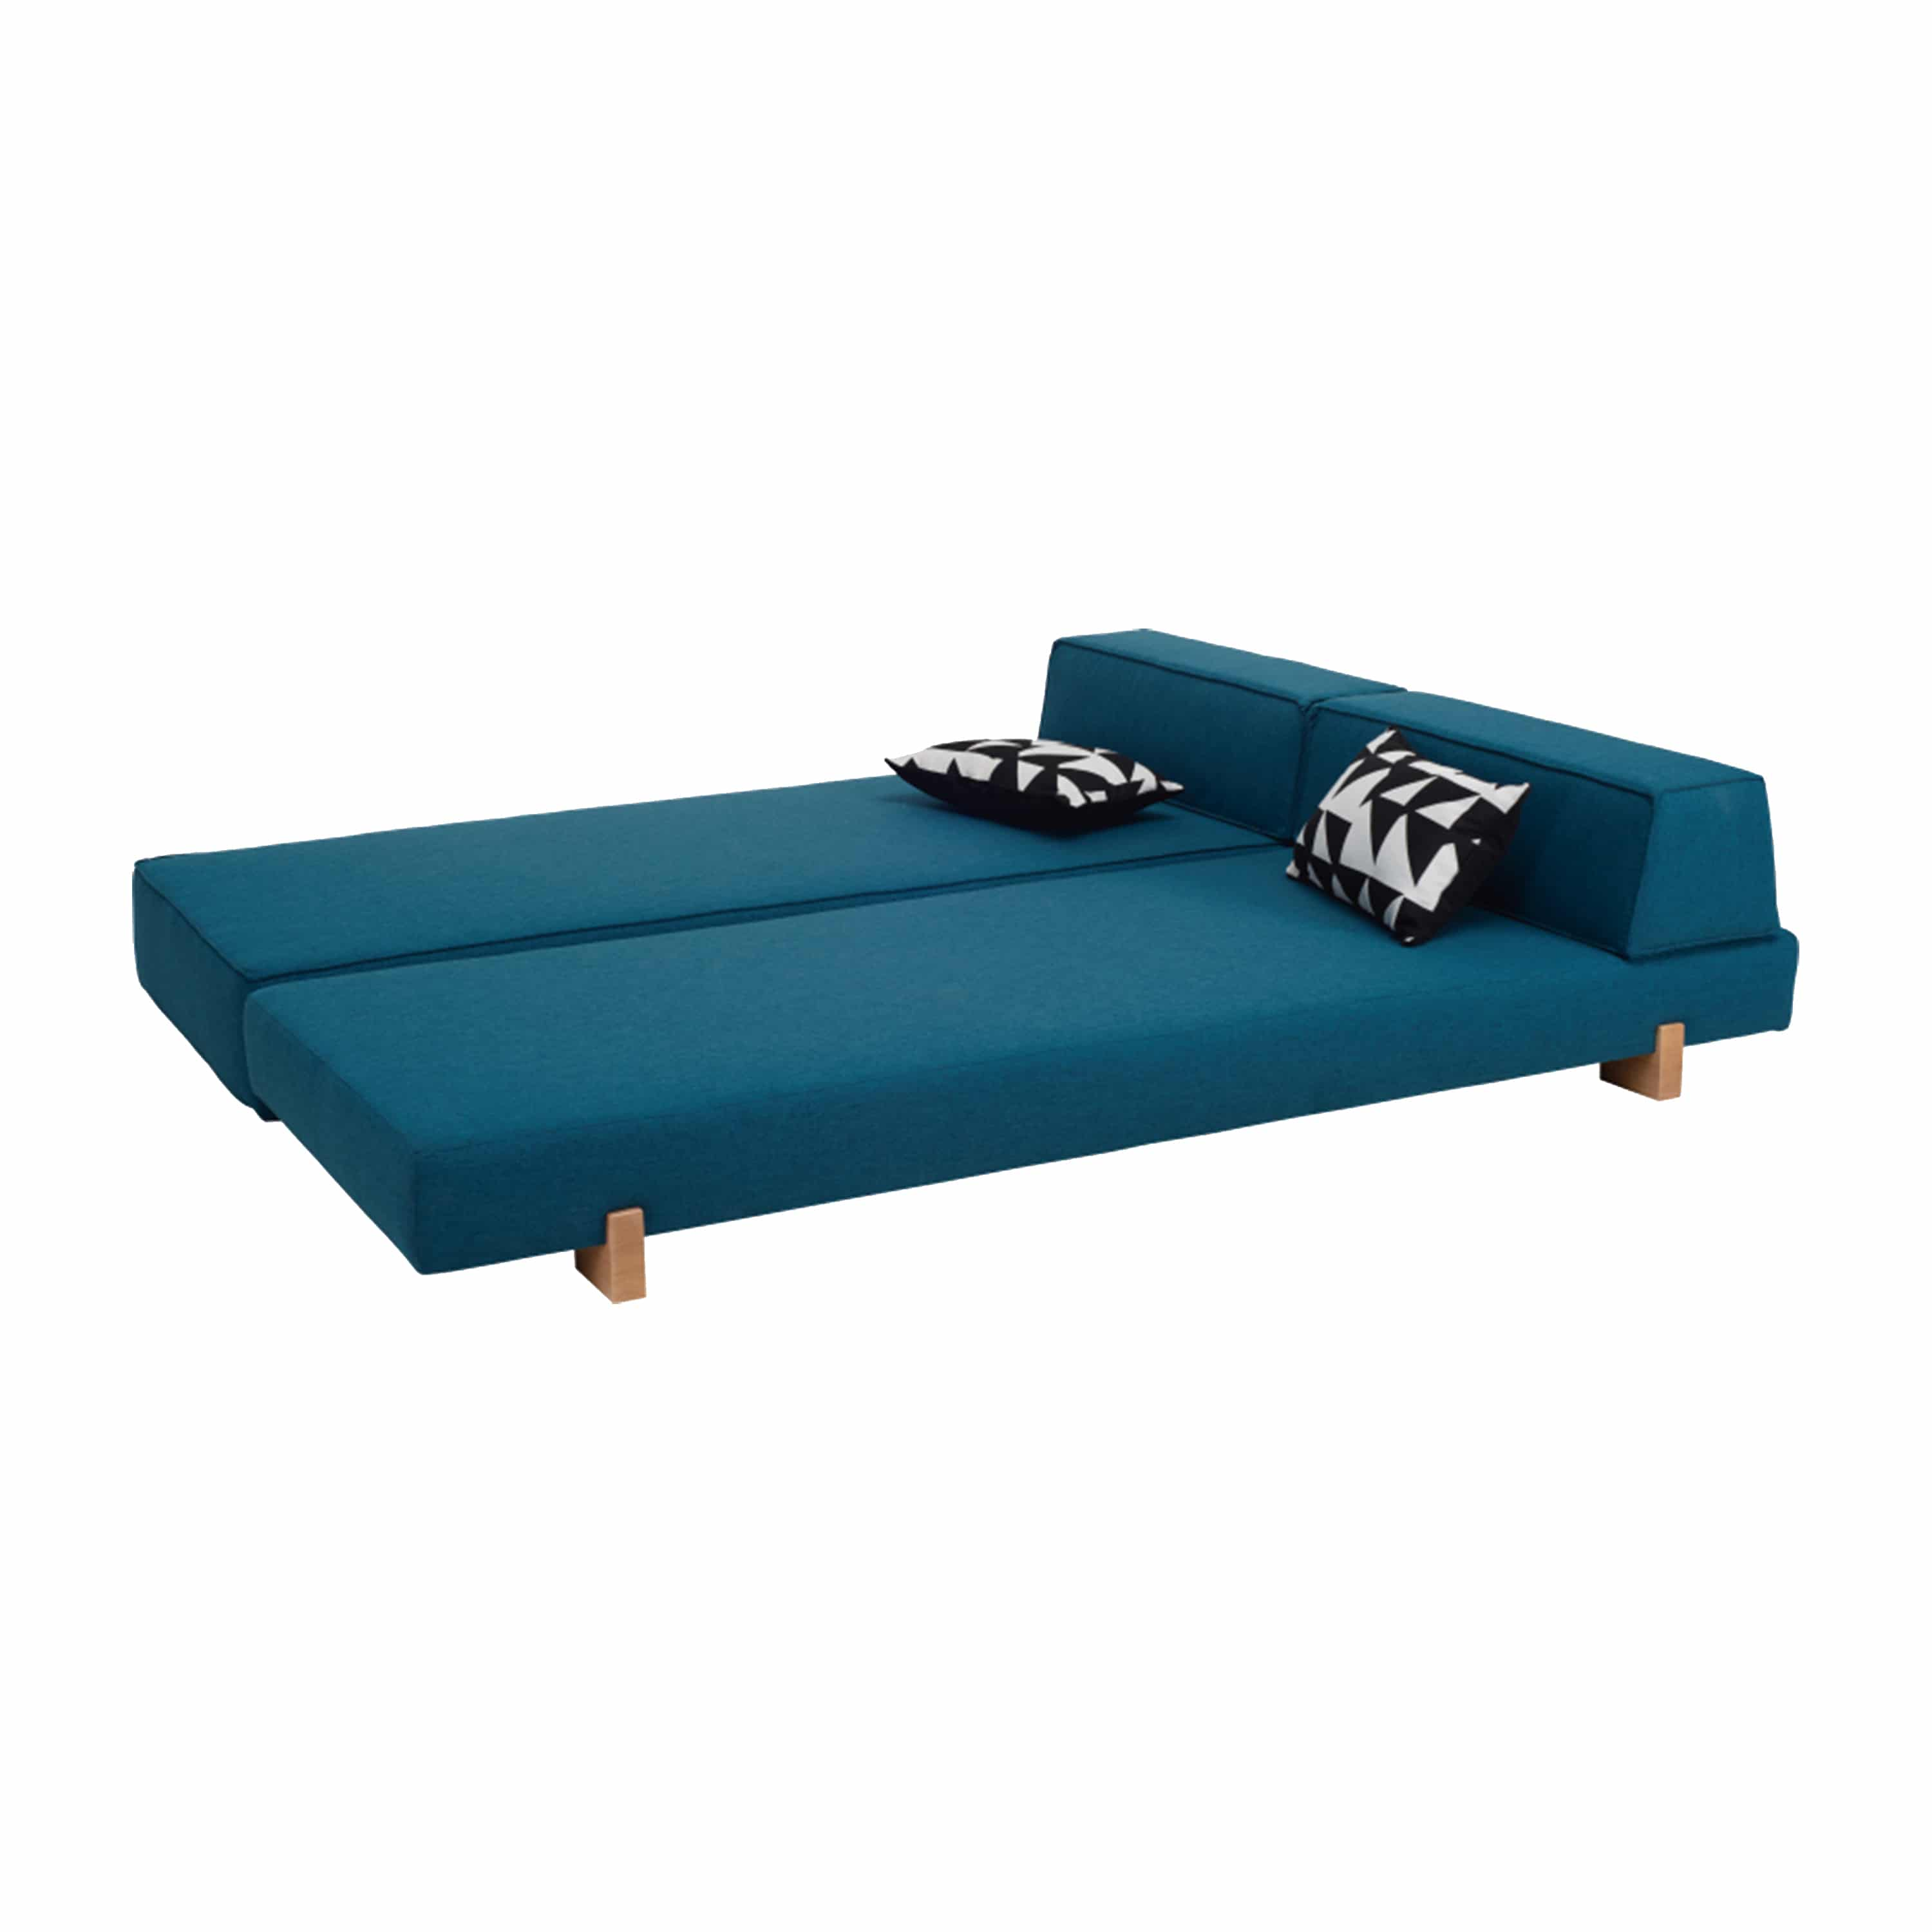 Ram Daybed 112/6112